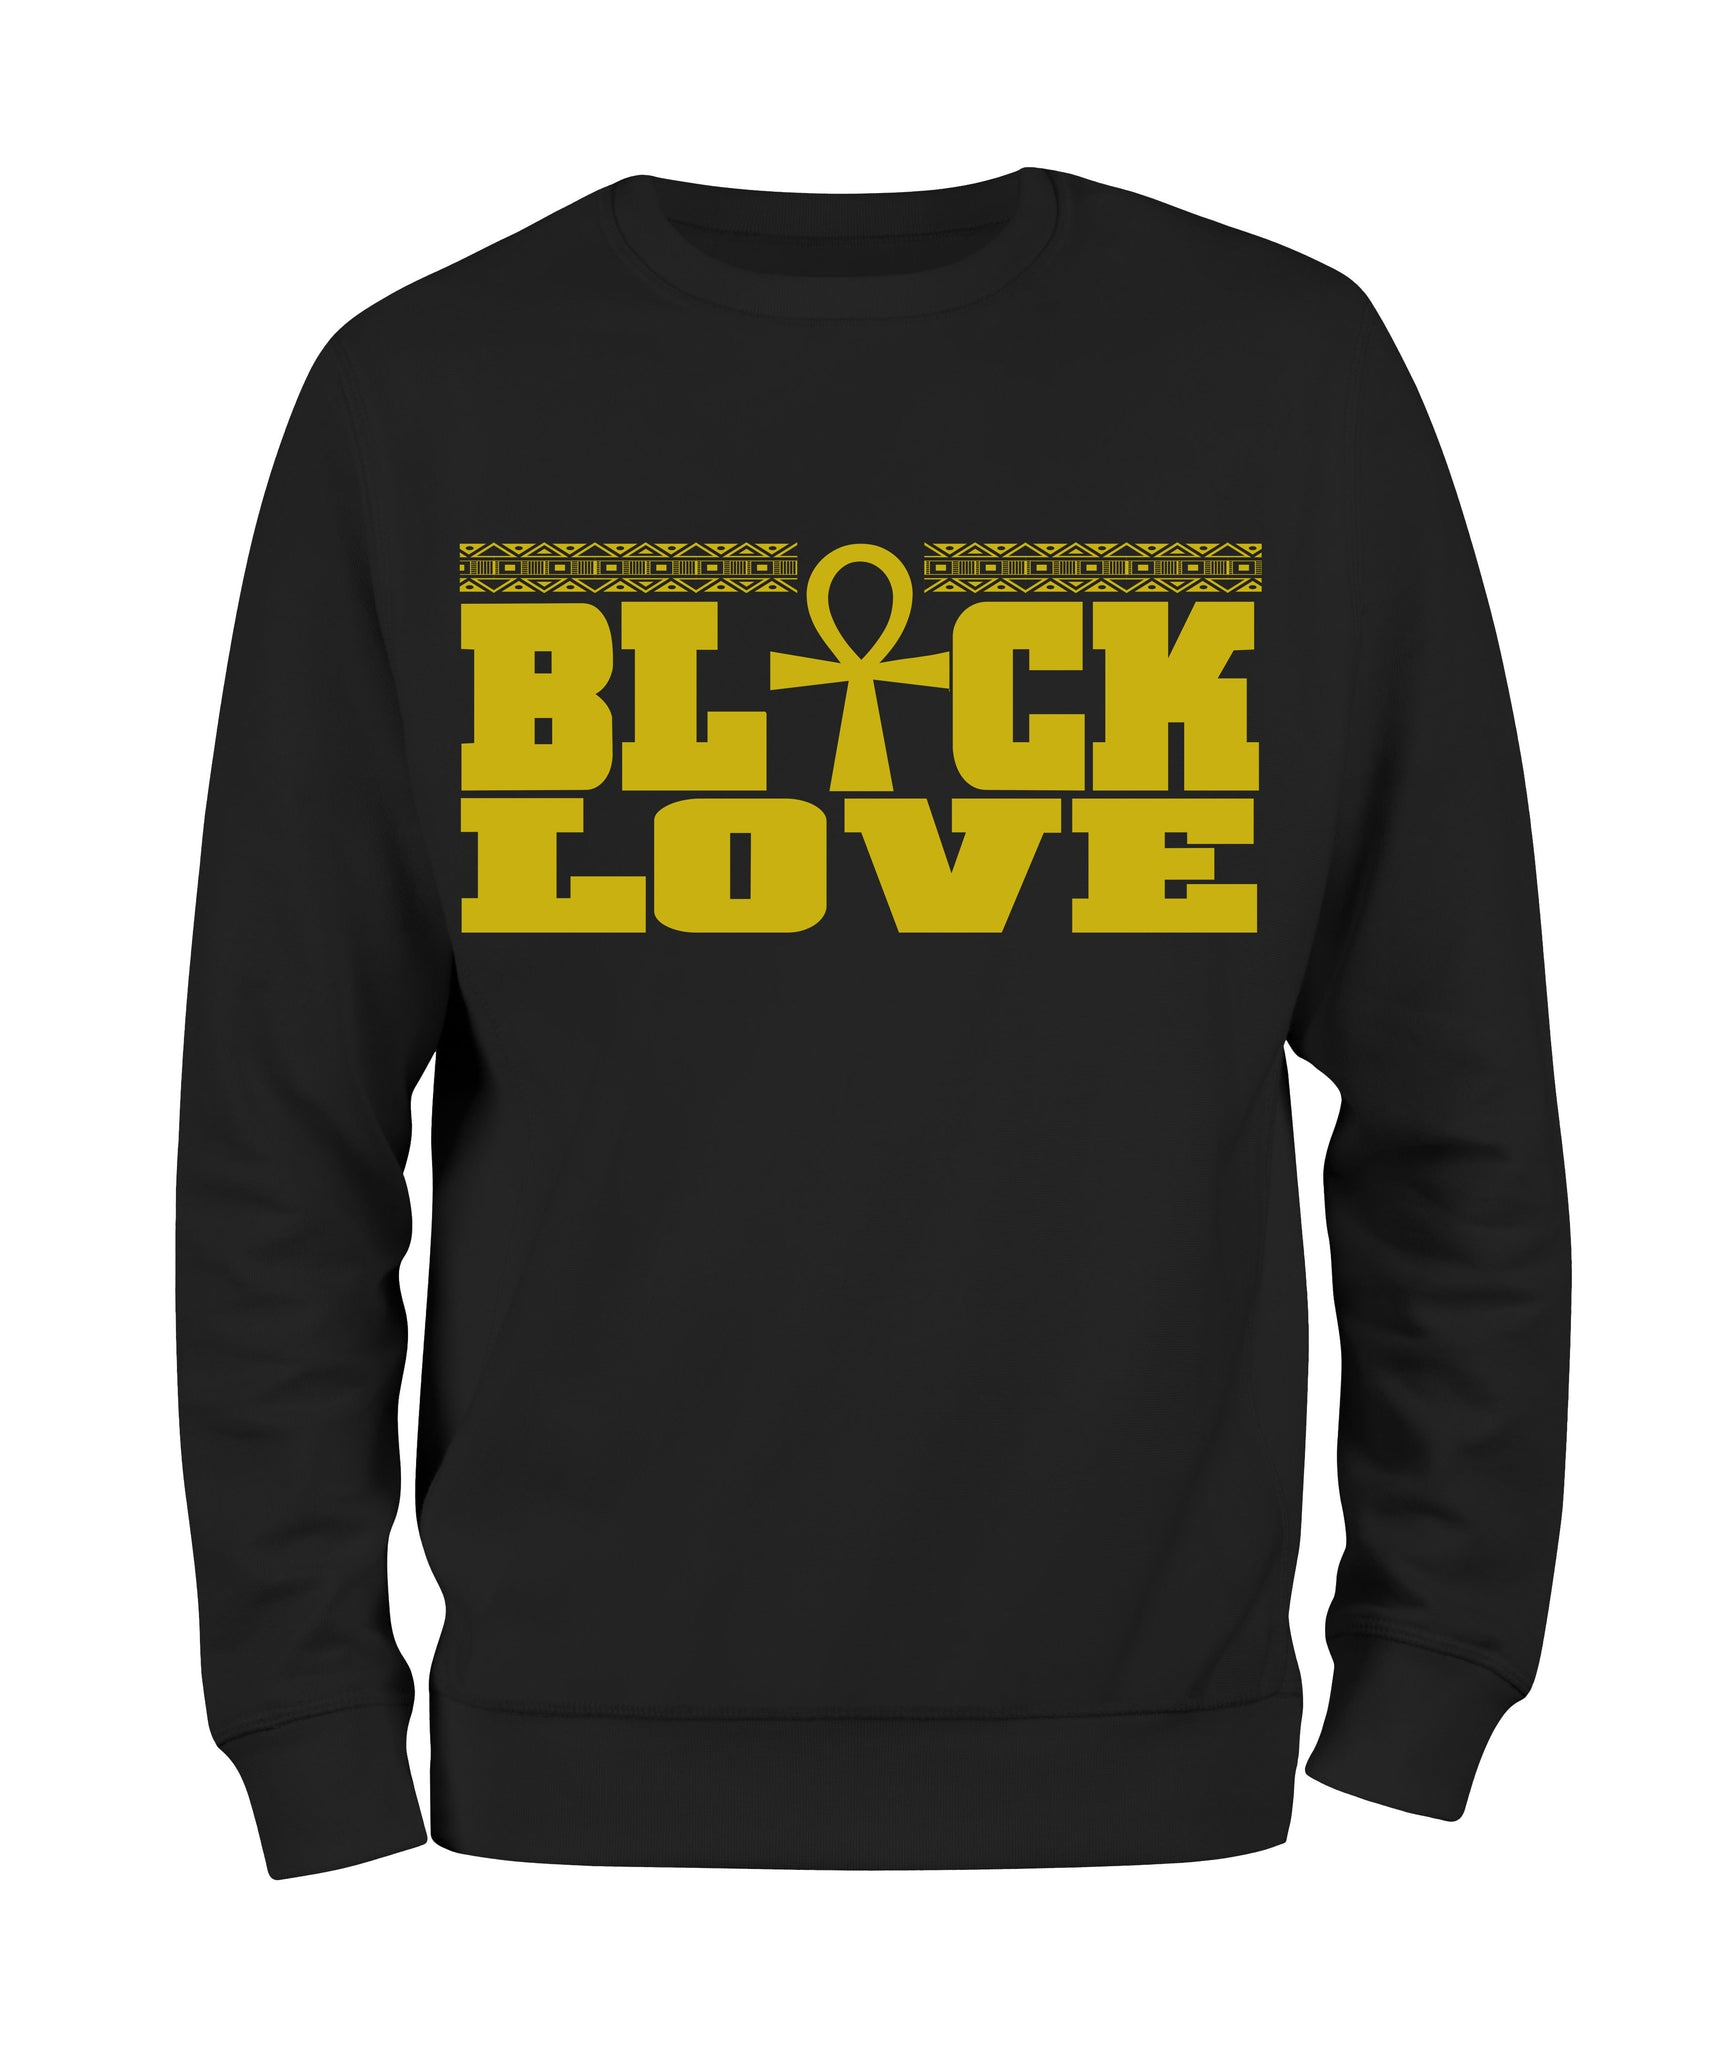 Black Love Sweatshirt - Black10.com